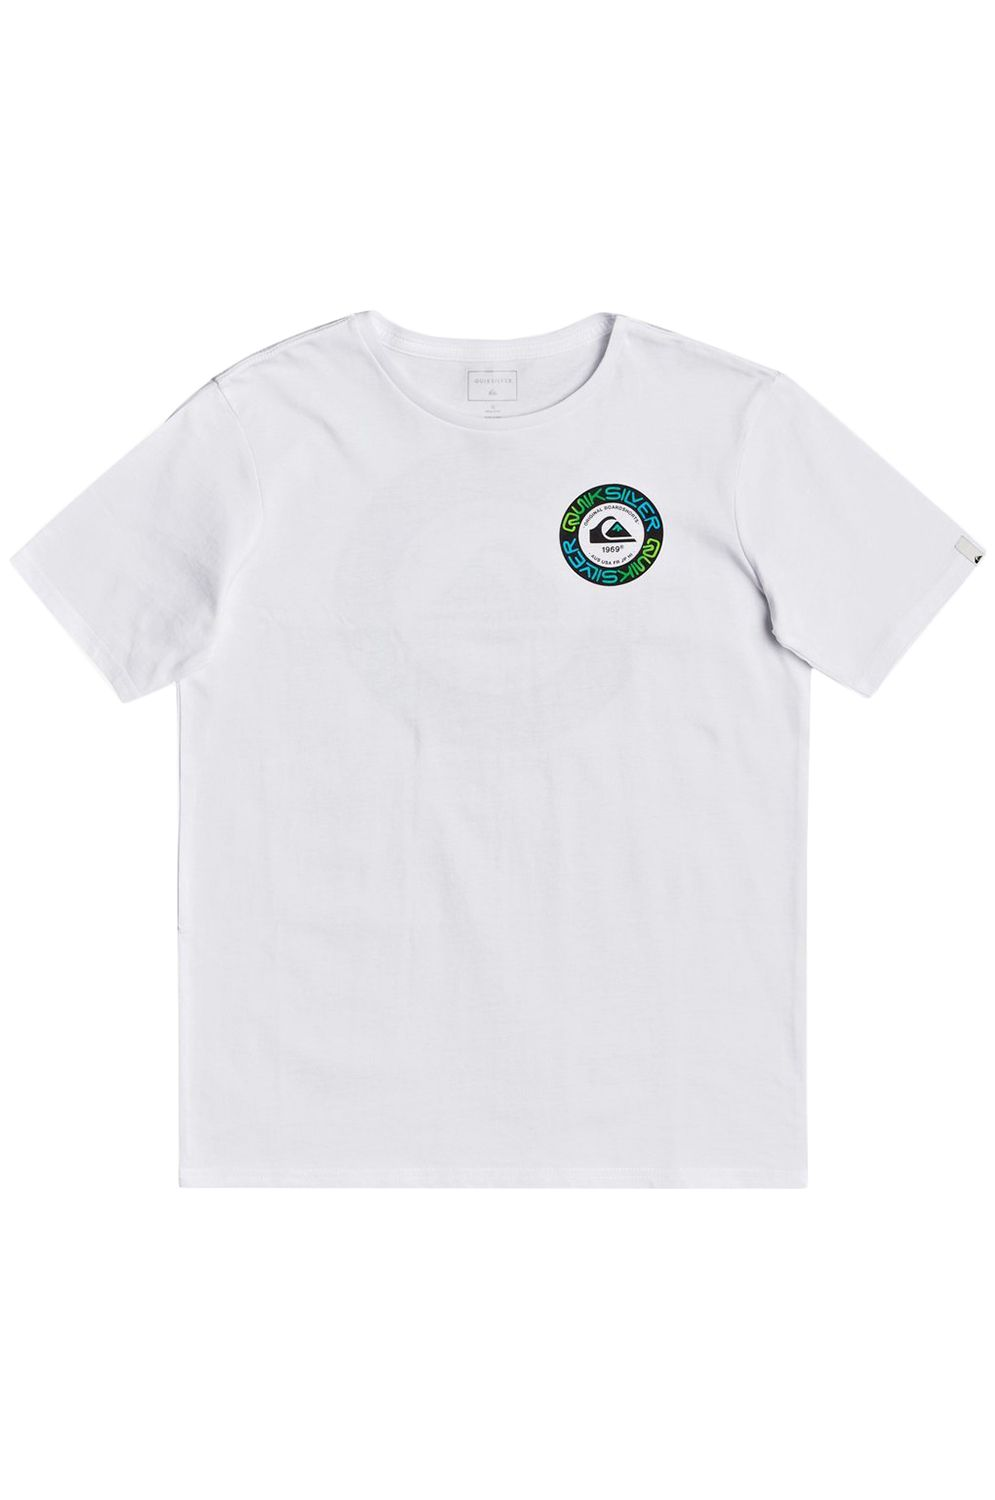 Quiksilver T-Shirt TIMECIRCLESSYTH B TEES White